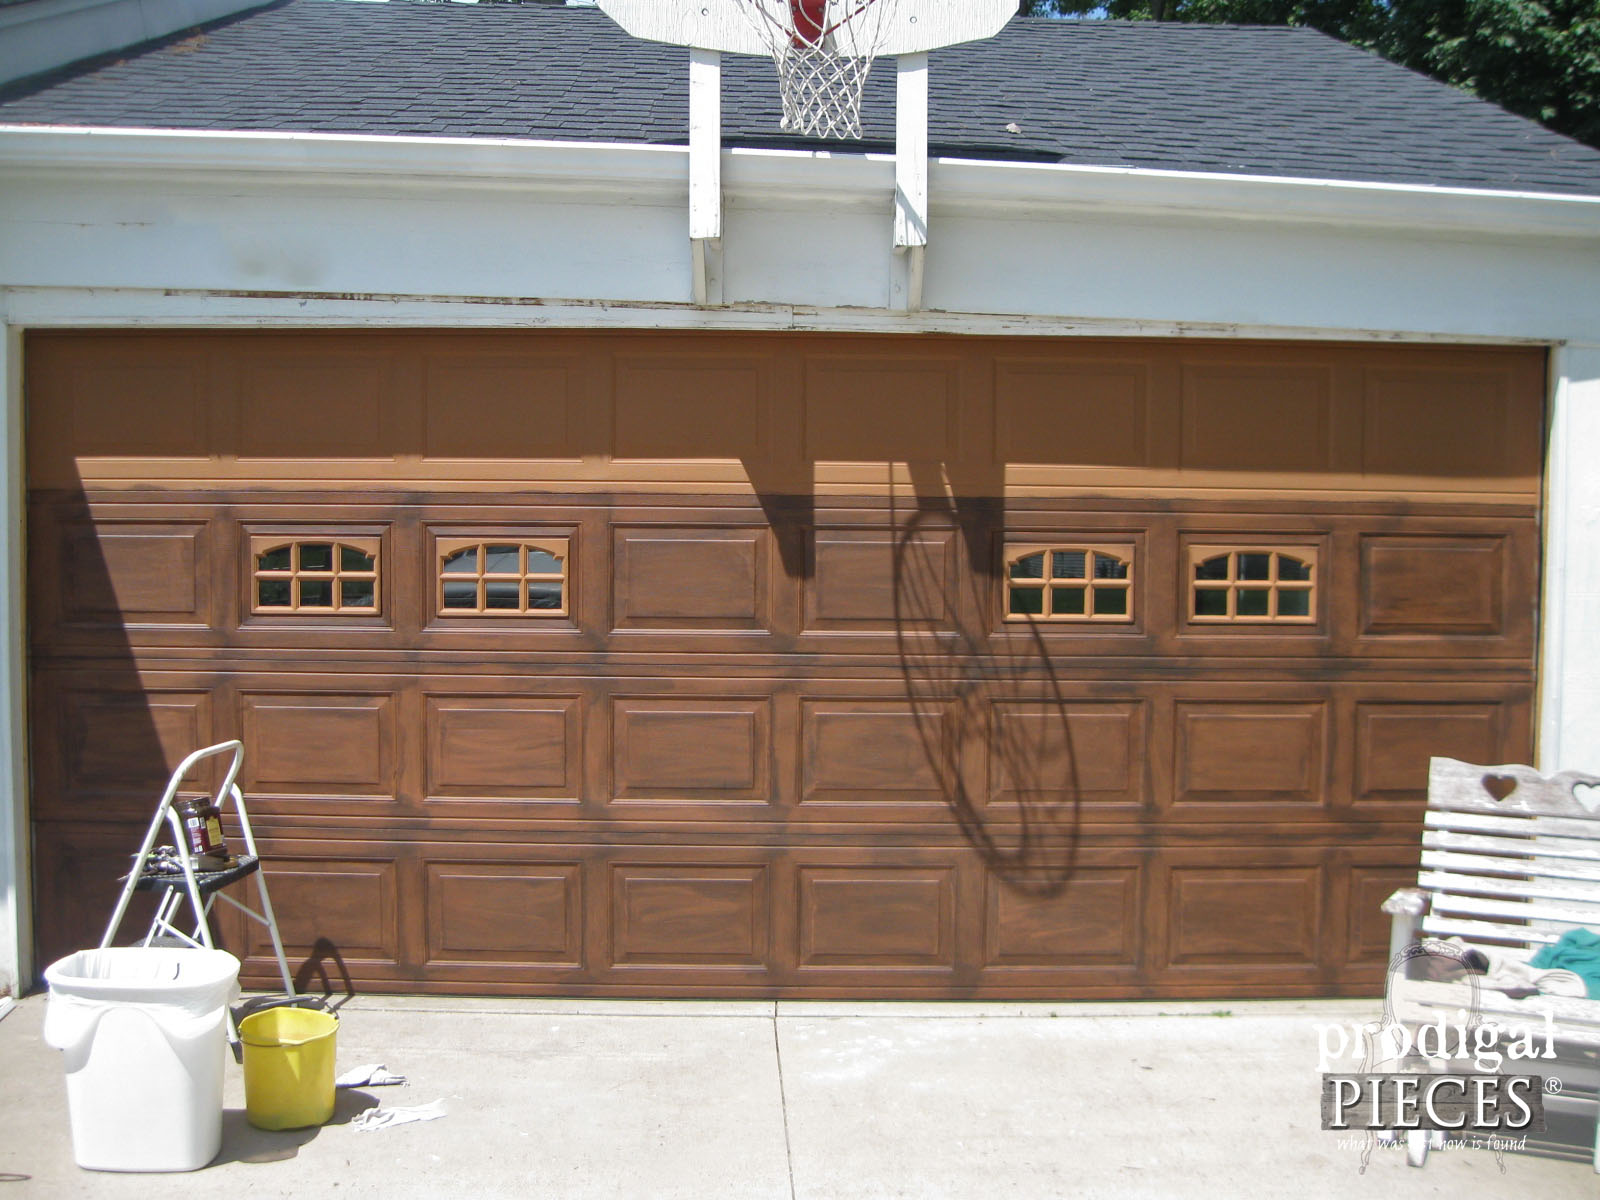 Wood Carriage Garage Doors. Wood Carriage Garage Doors